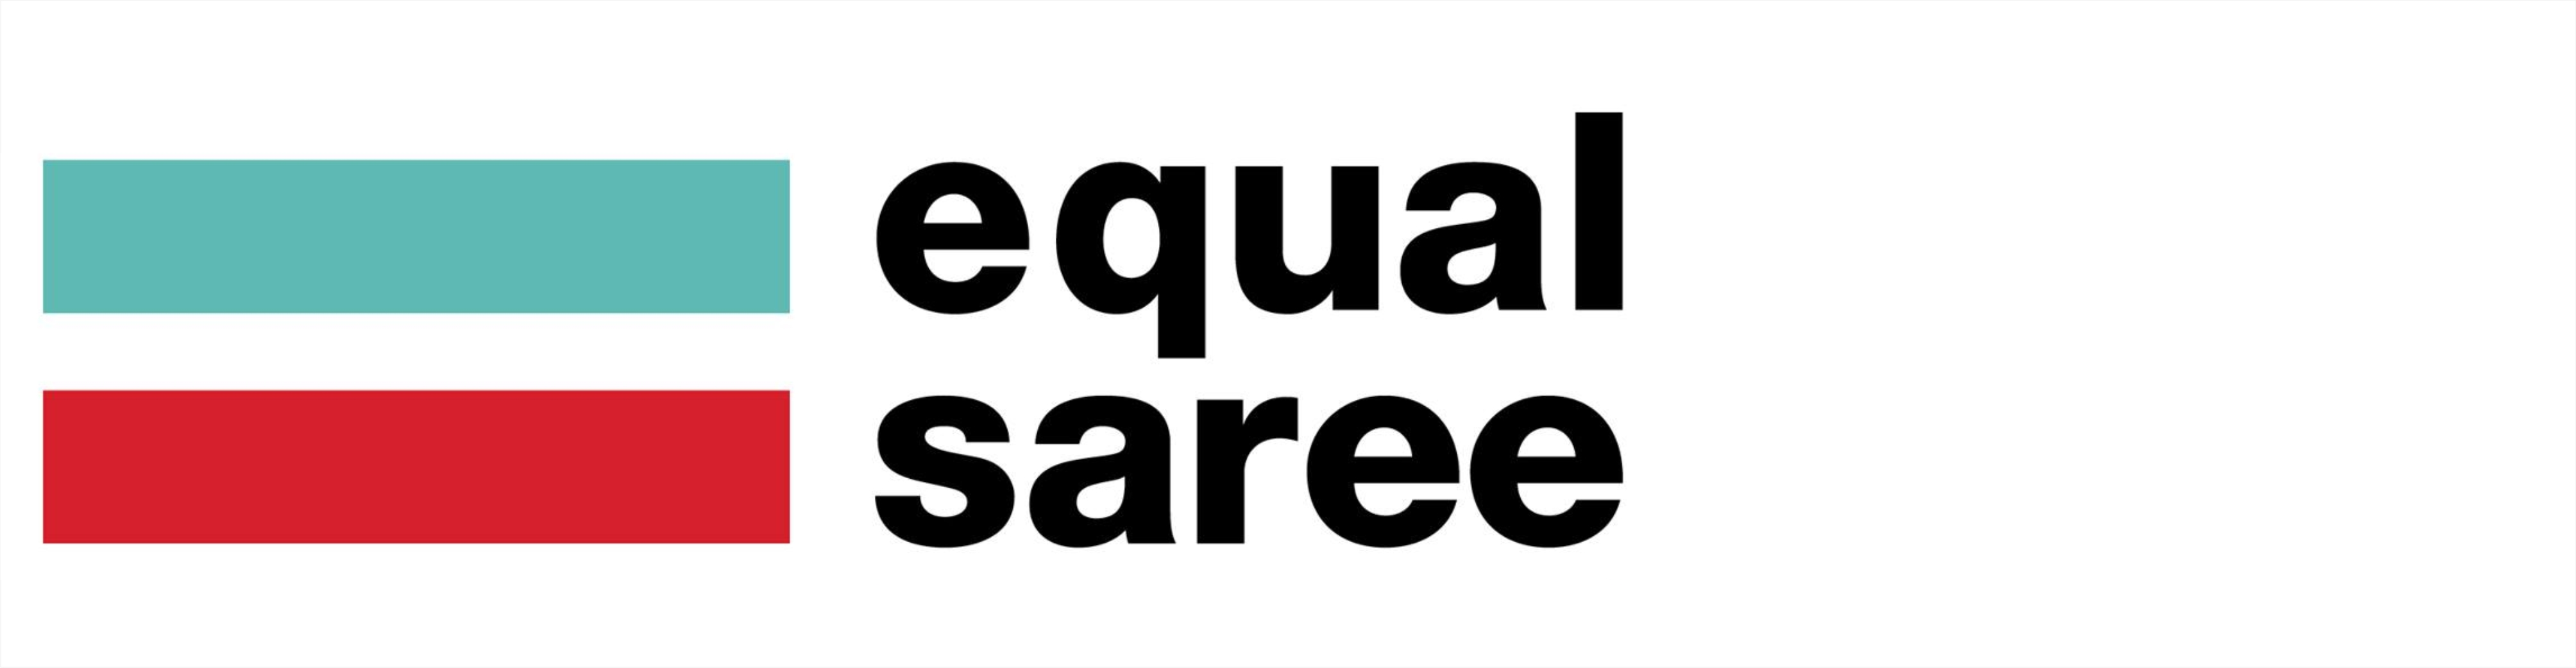 Equal Saree